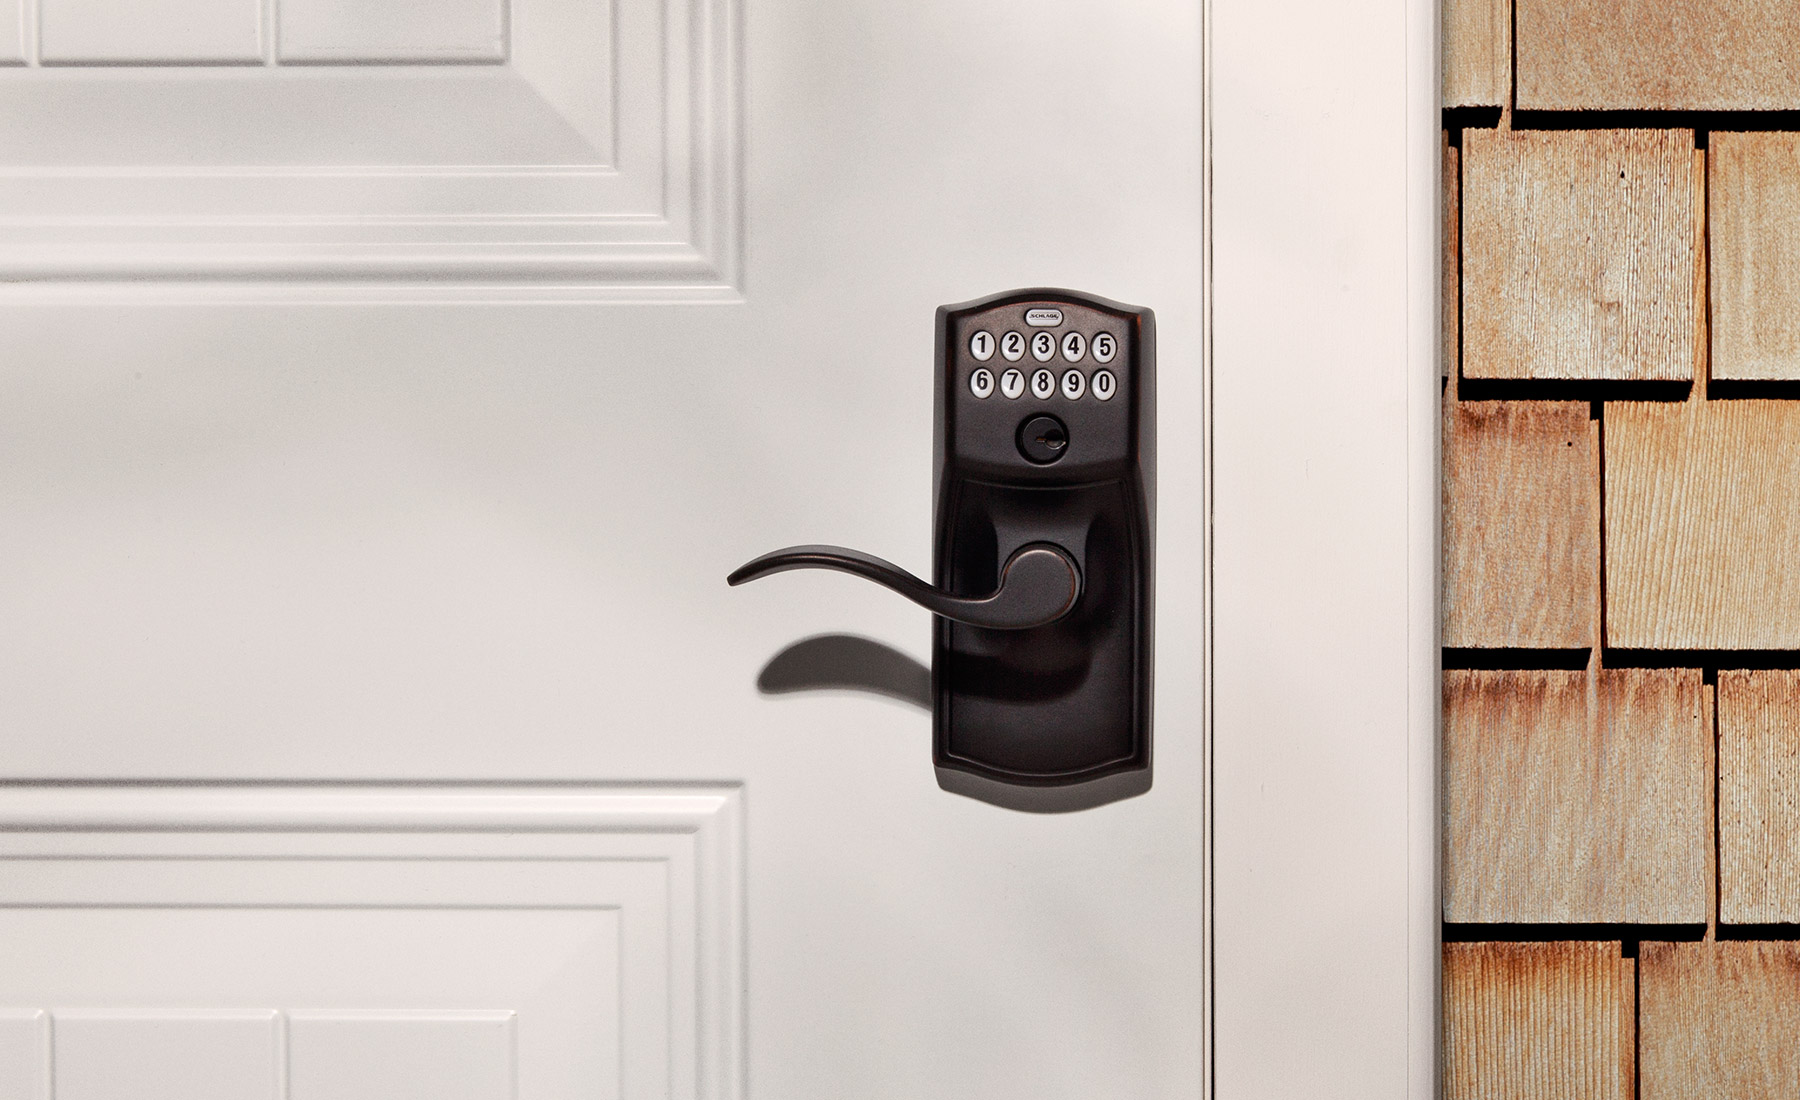 key baldwin entry doors buy knob z plae cool steel stainless inspiring round home wave bhp hardware ball dealers with door and handles lock better materials sn products